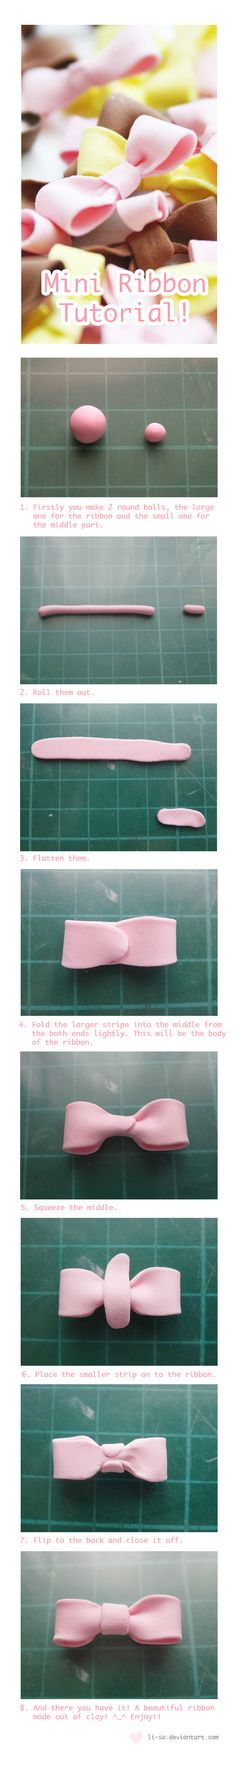 Sweet lil bow...Mini Ribbon Tutorial by li-sa.deviantart.com on @deviantART fimo/polymer clay